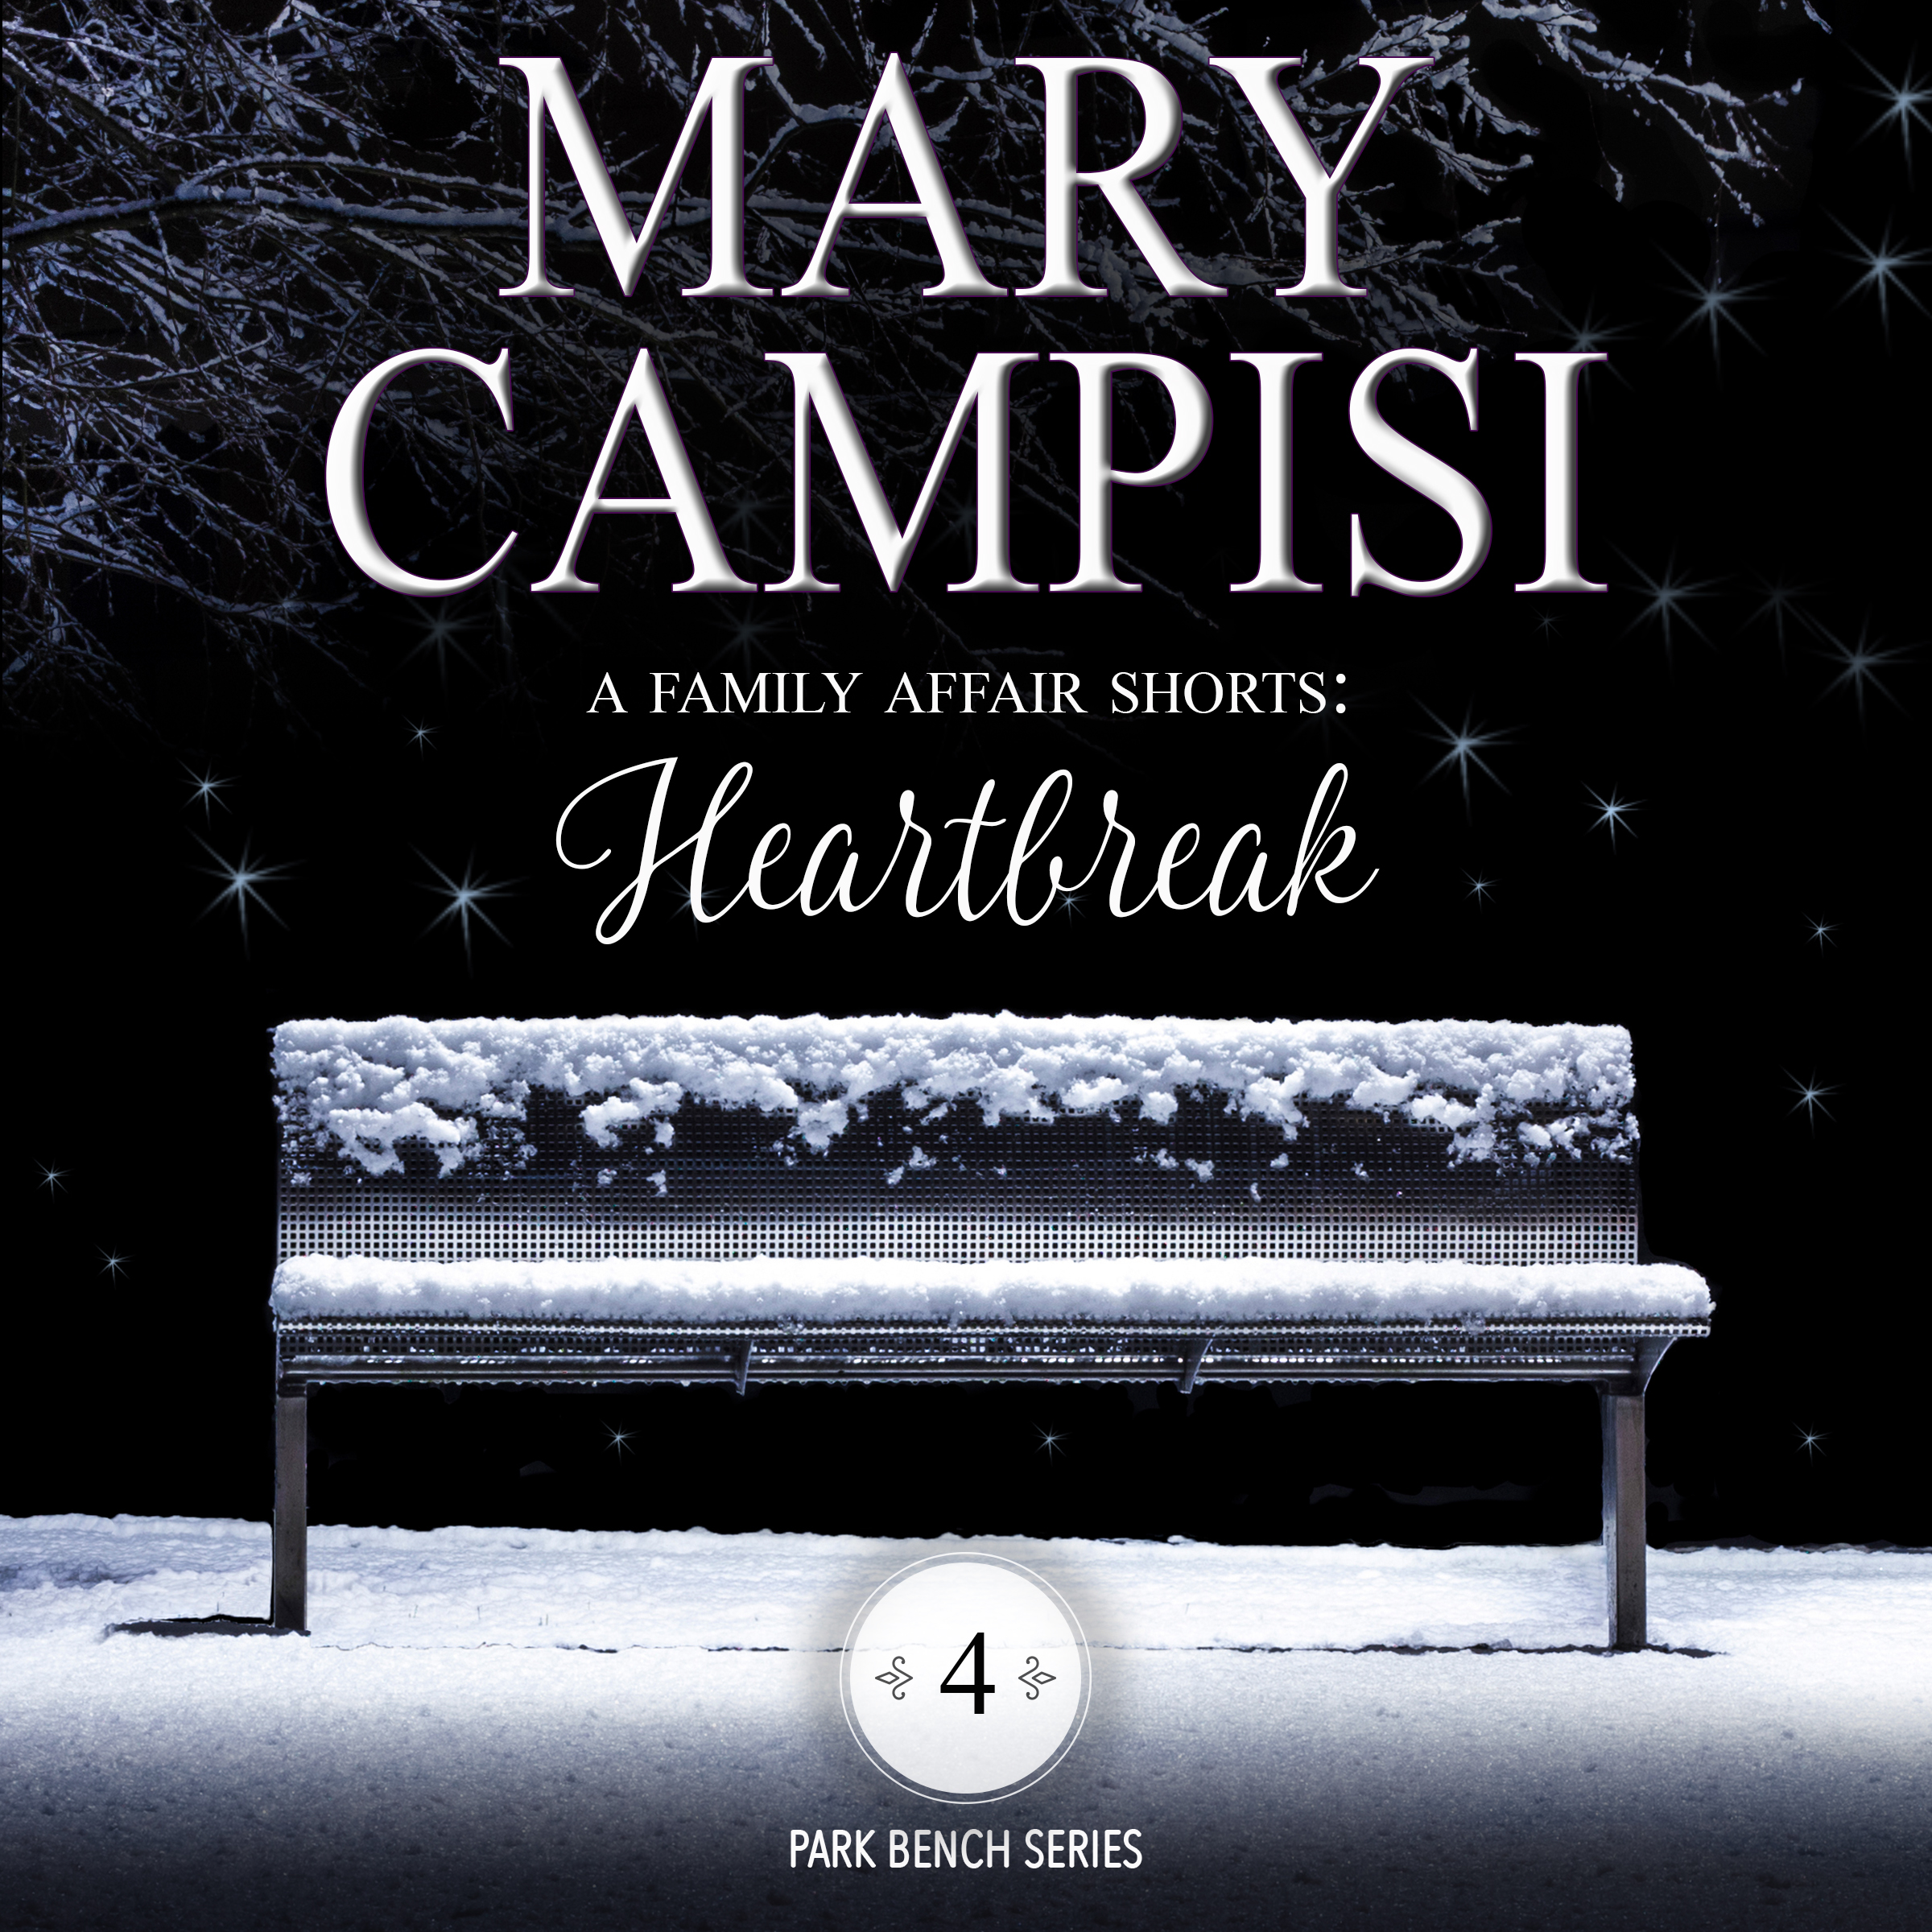 A Family Affair Shorts: Heartbreak audiobook by Mary Campisi